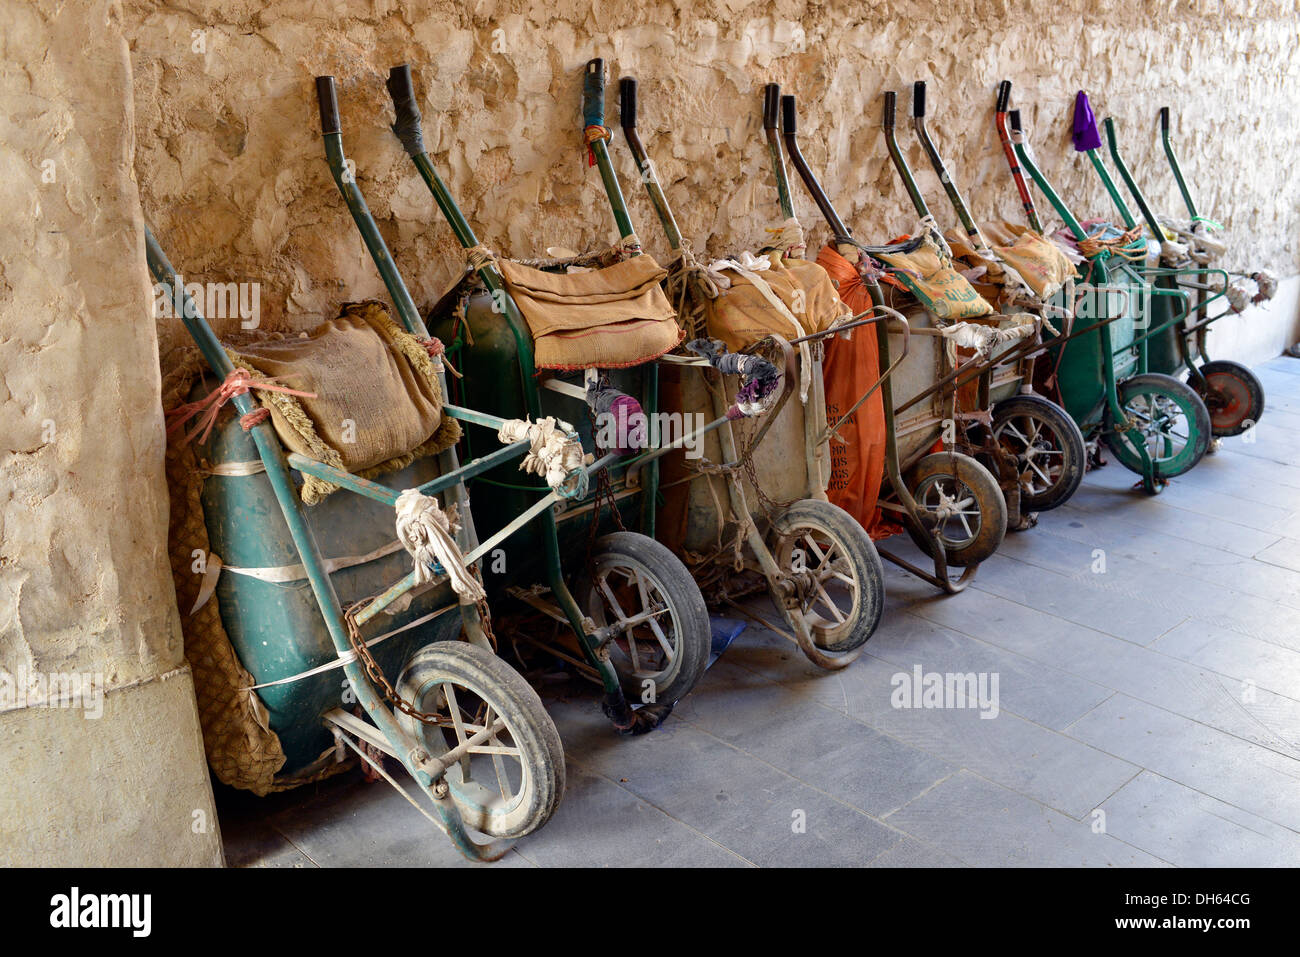 Parking for wheelbarrows, push carts, main means of transport in the Souq al Waqif, oldest souq or bazaar in the country, Doha - Stock Image